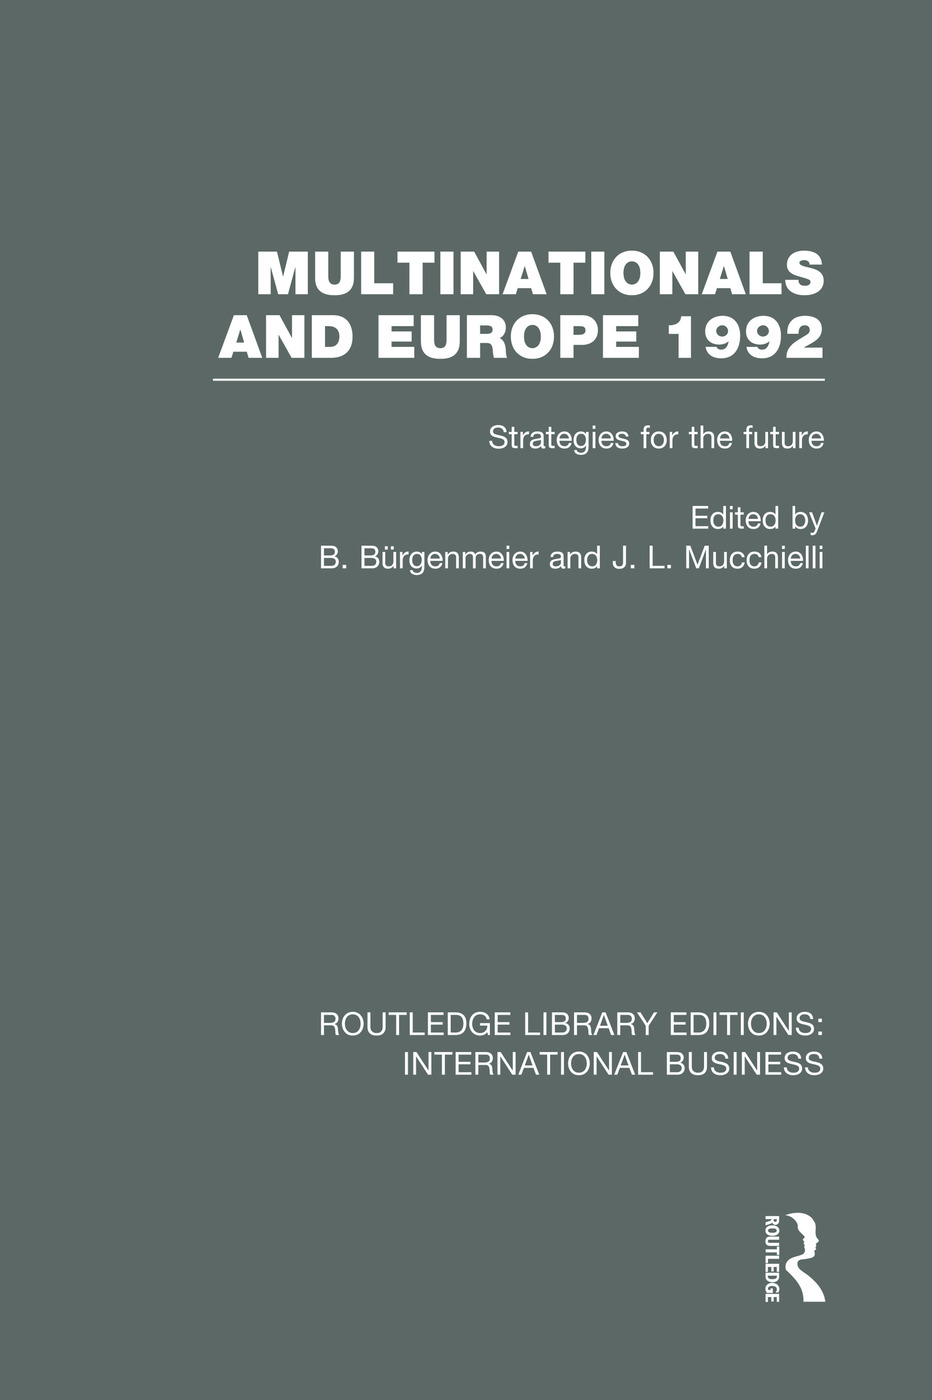 Multinationals and Europe 1992 (RLE International Business)